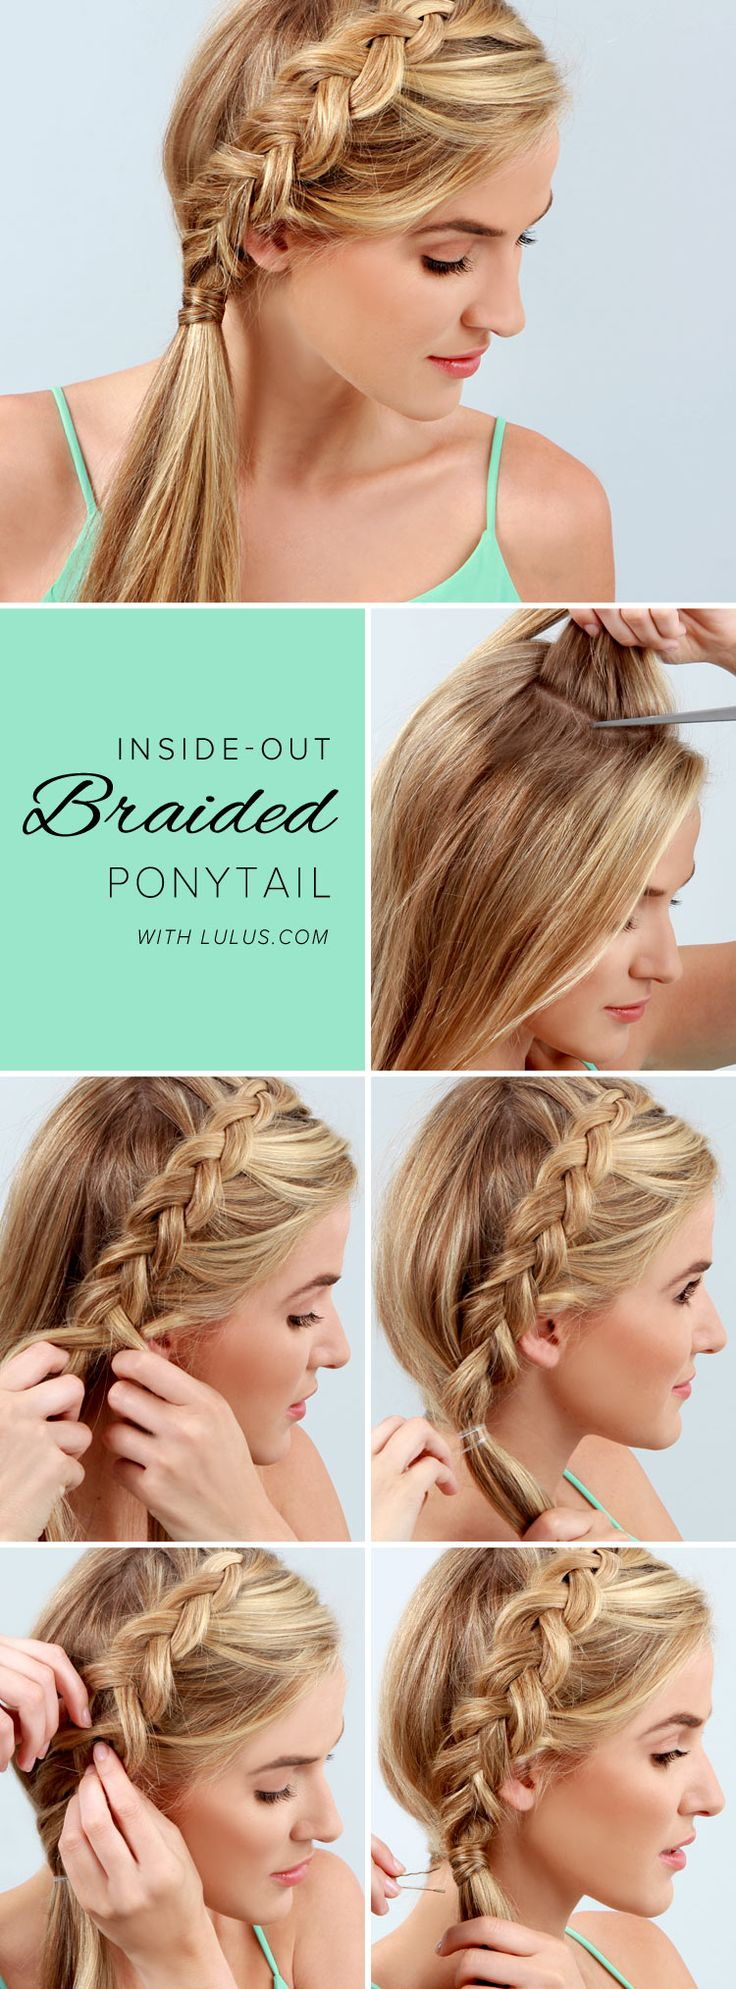 Inside-Out Braided Ponytail Tutorial by LuLu*s